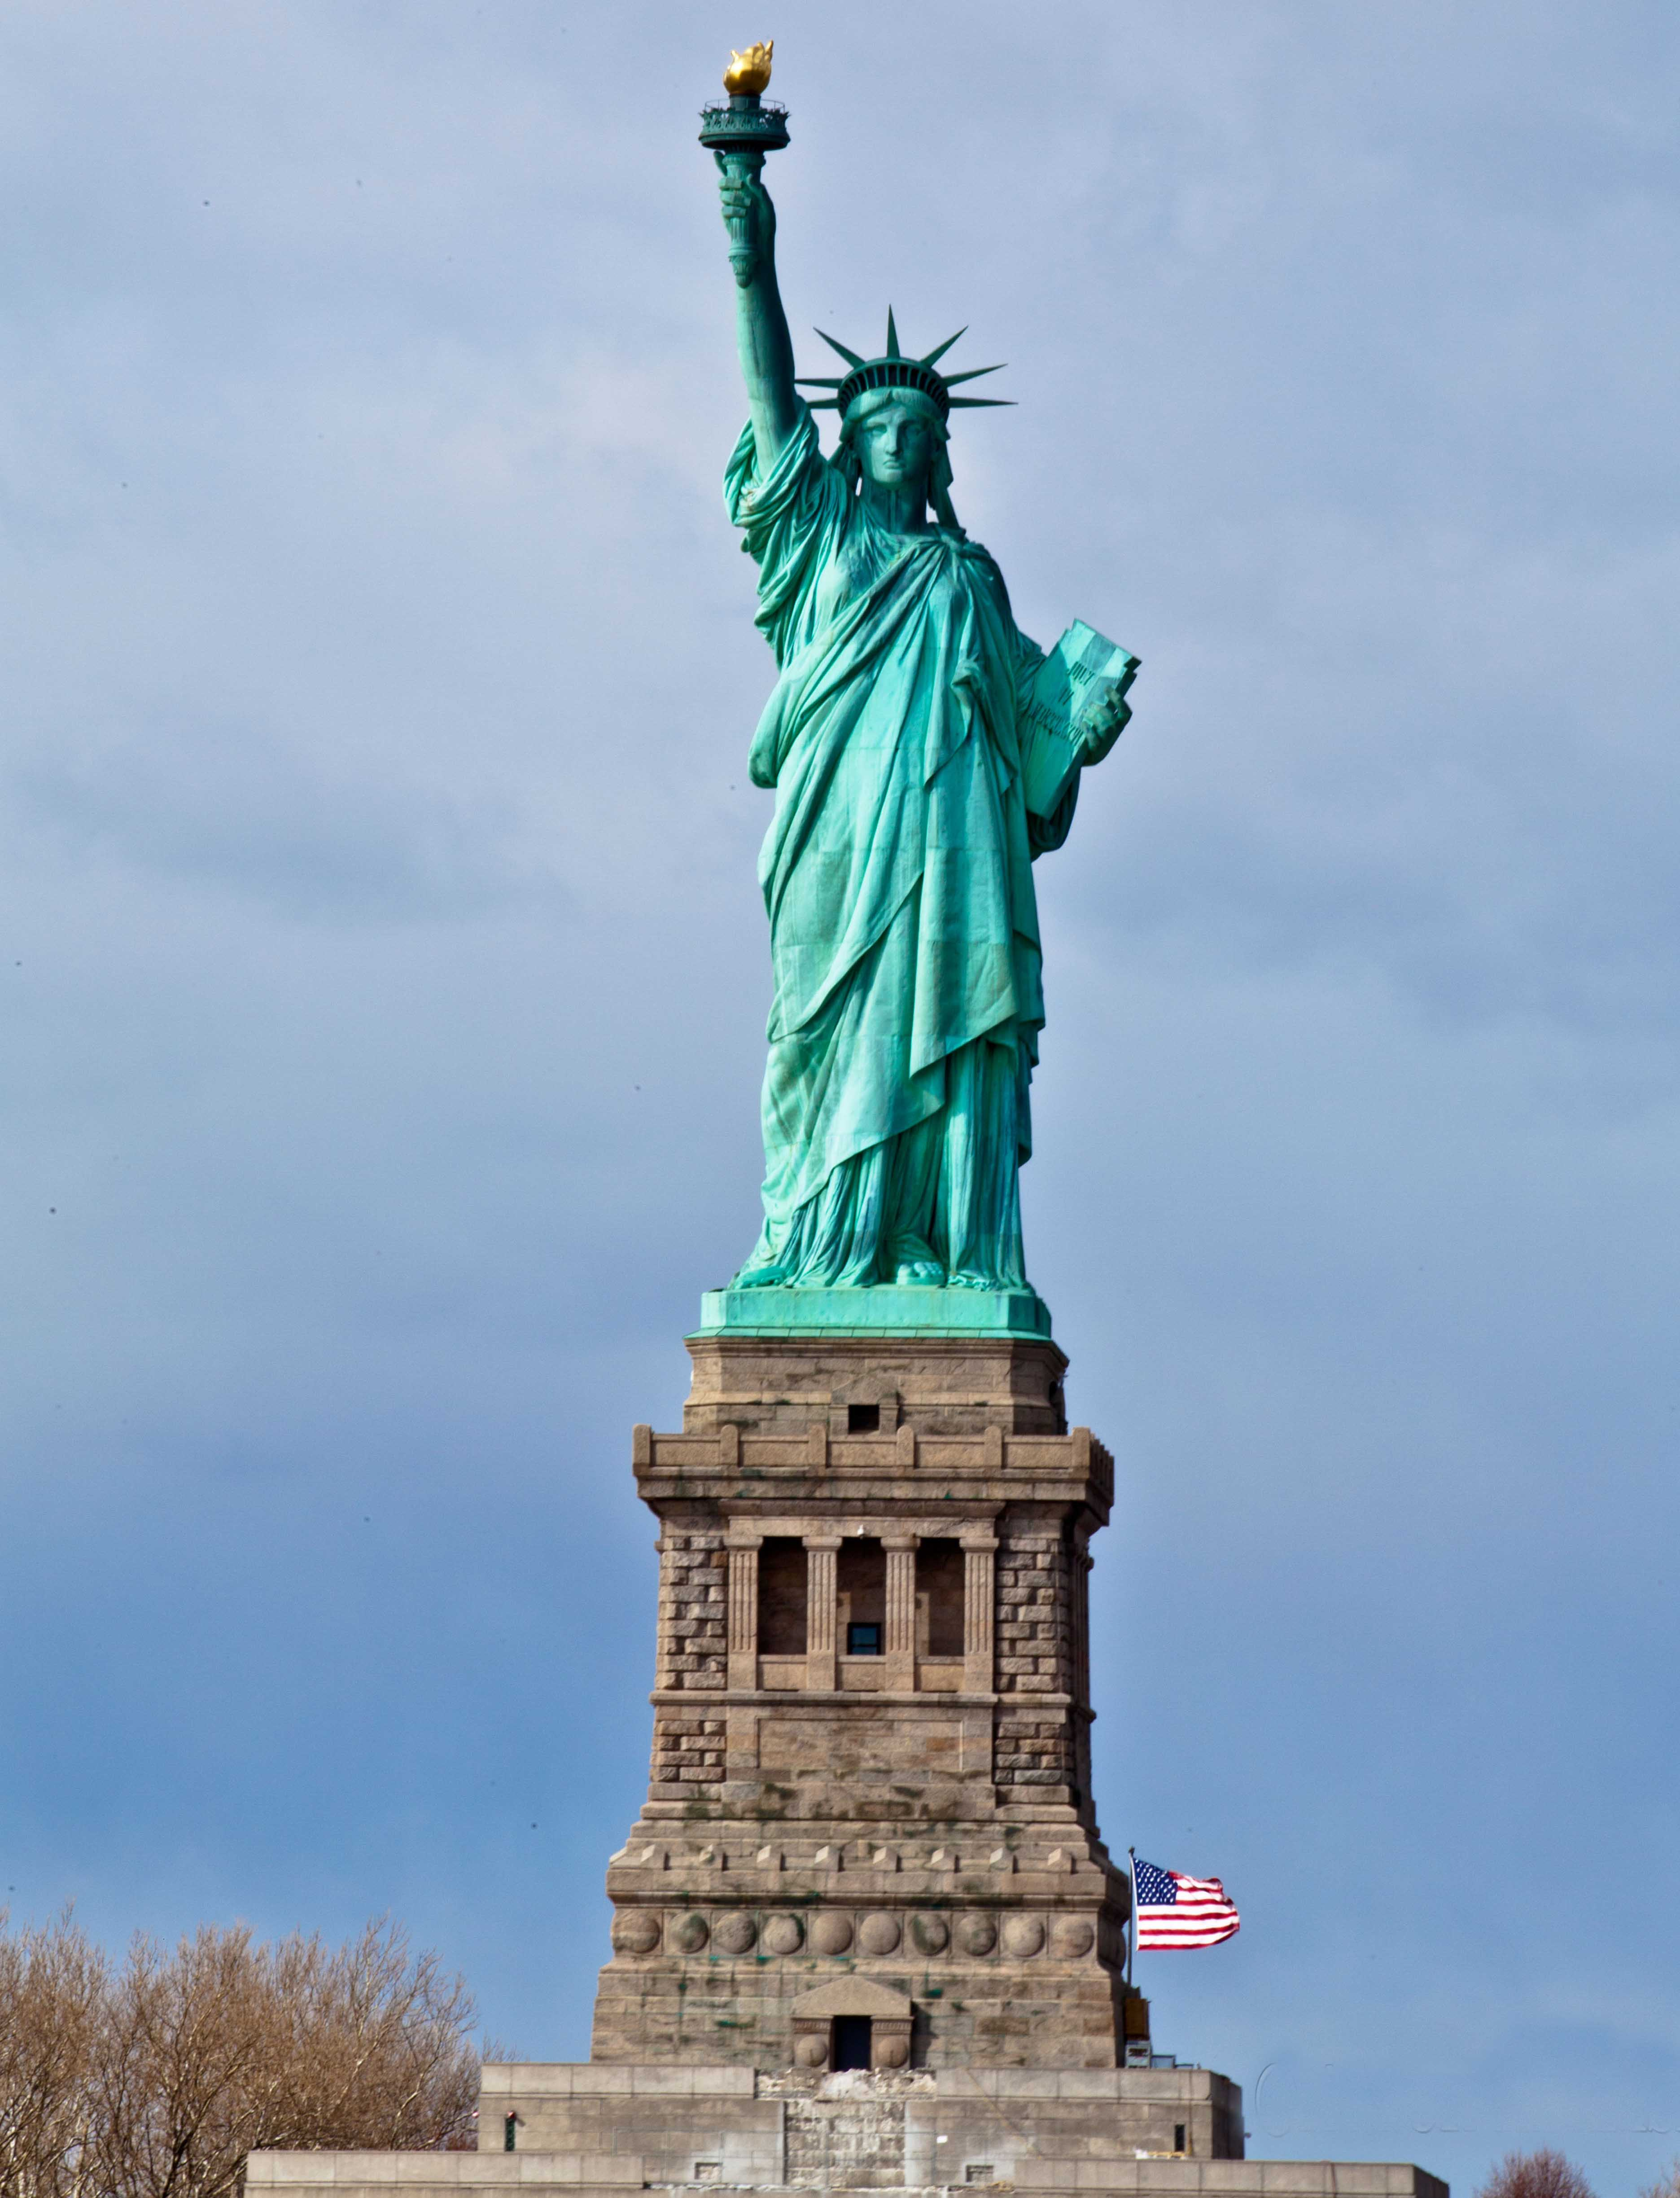 Statue Of Liberty Images - Statue Of Liberty , HD Wallpaper & Backgrounds